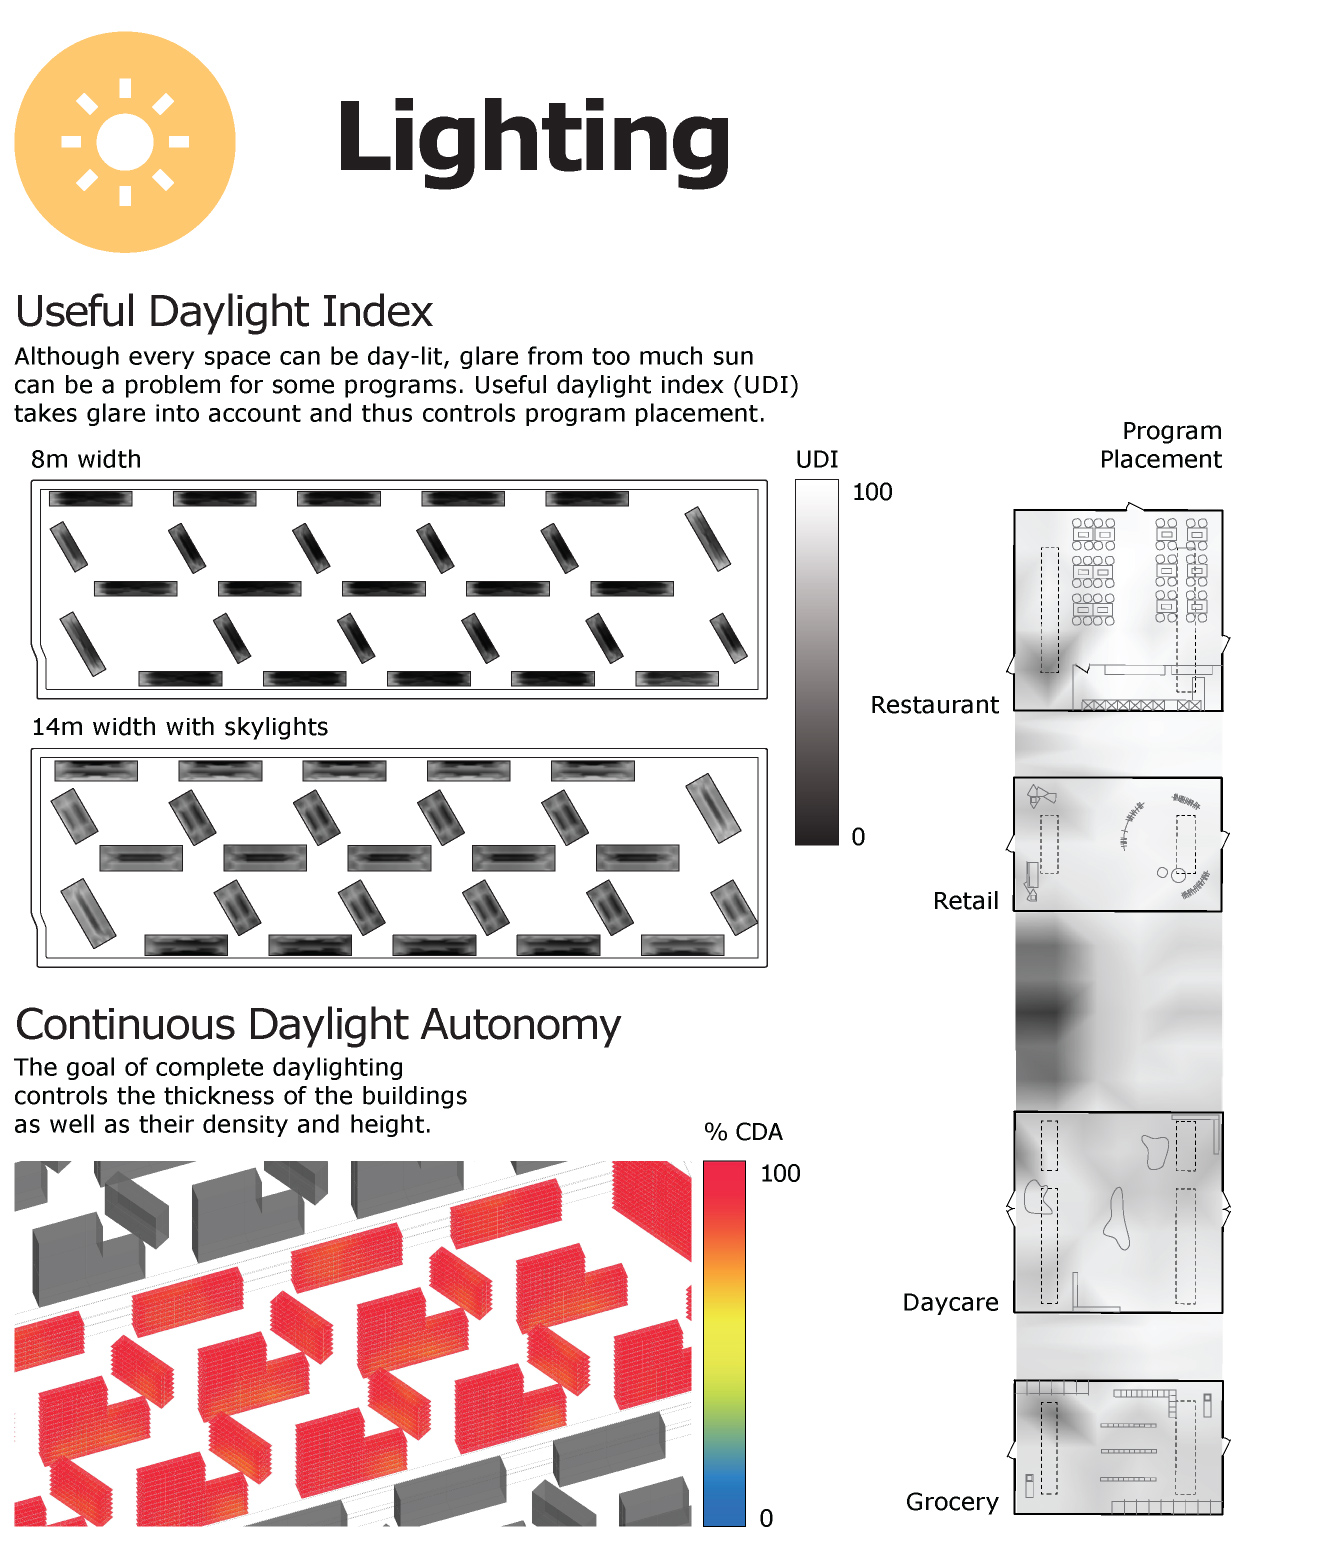 Optimizing for natural lighting is a balancing act between glare and darkness. We used digital modeling to find the best combination of building width, spacing, and design.